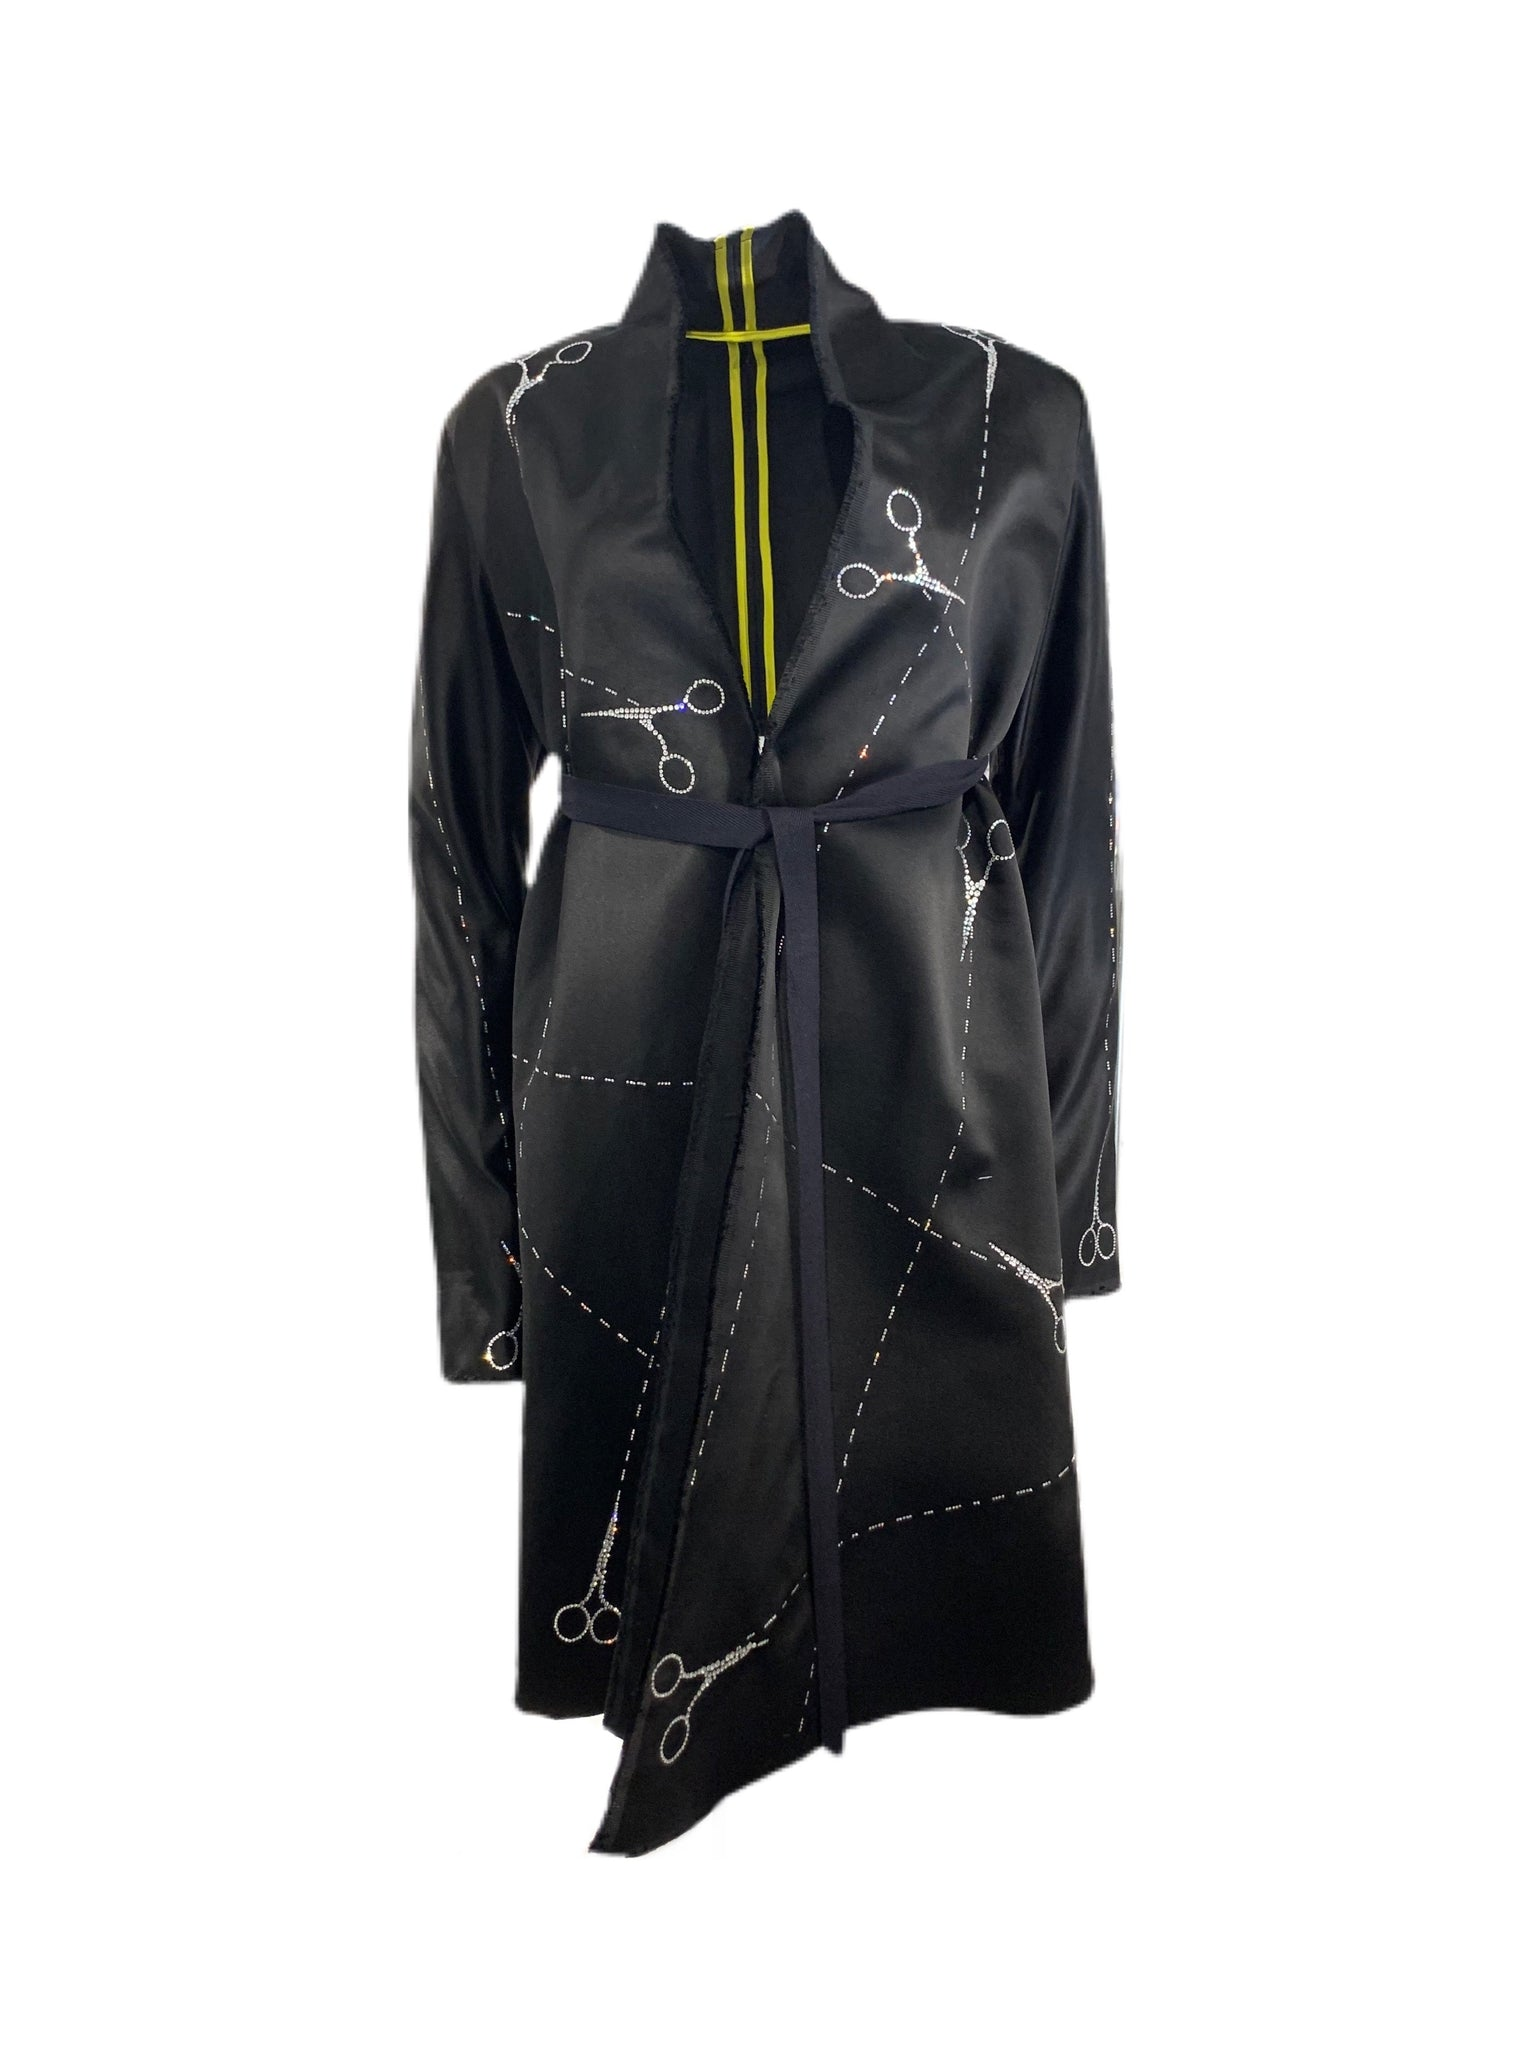 'CUT UP SCISSORS' VINTAGE JENNIFER GEORGE NYC COAT - COATS - Libertine